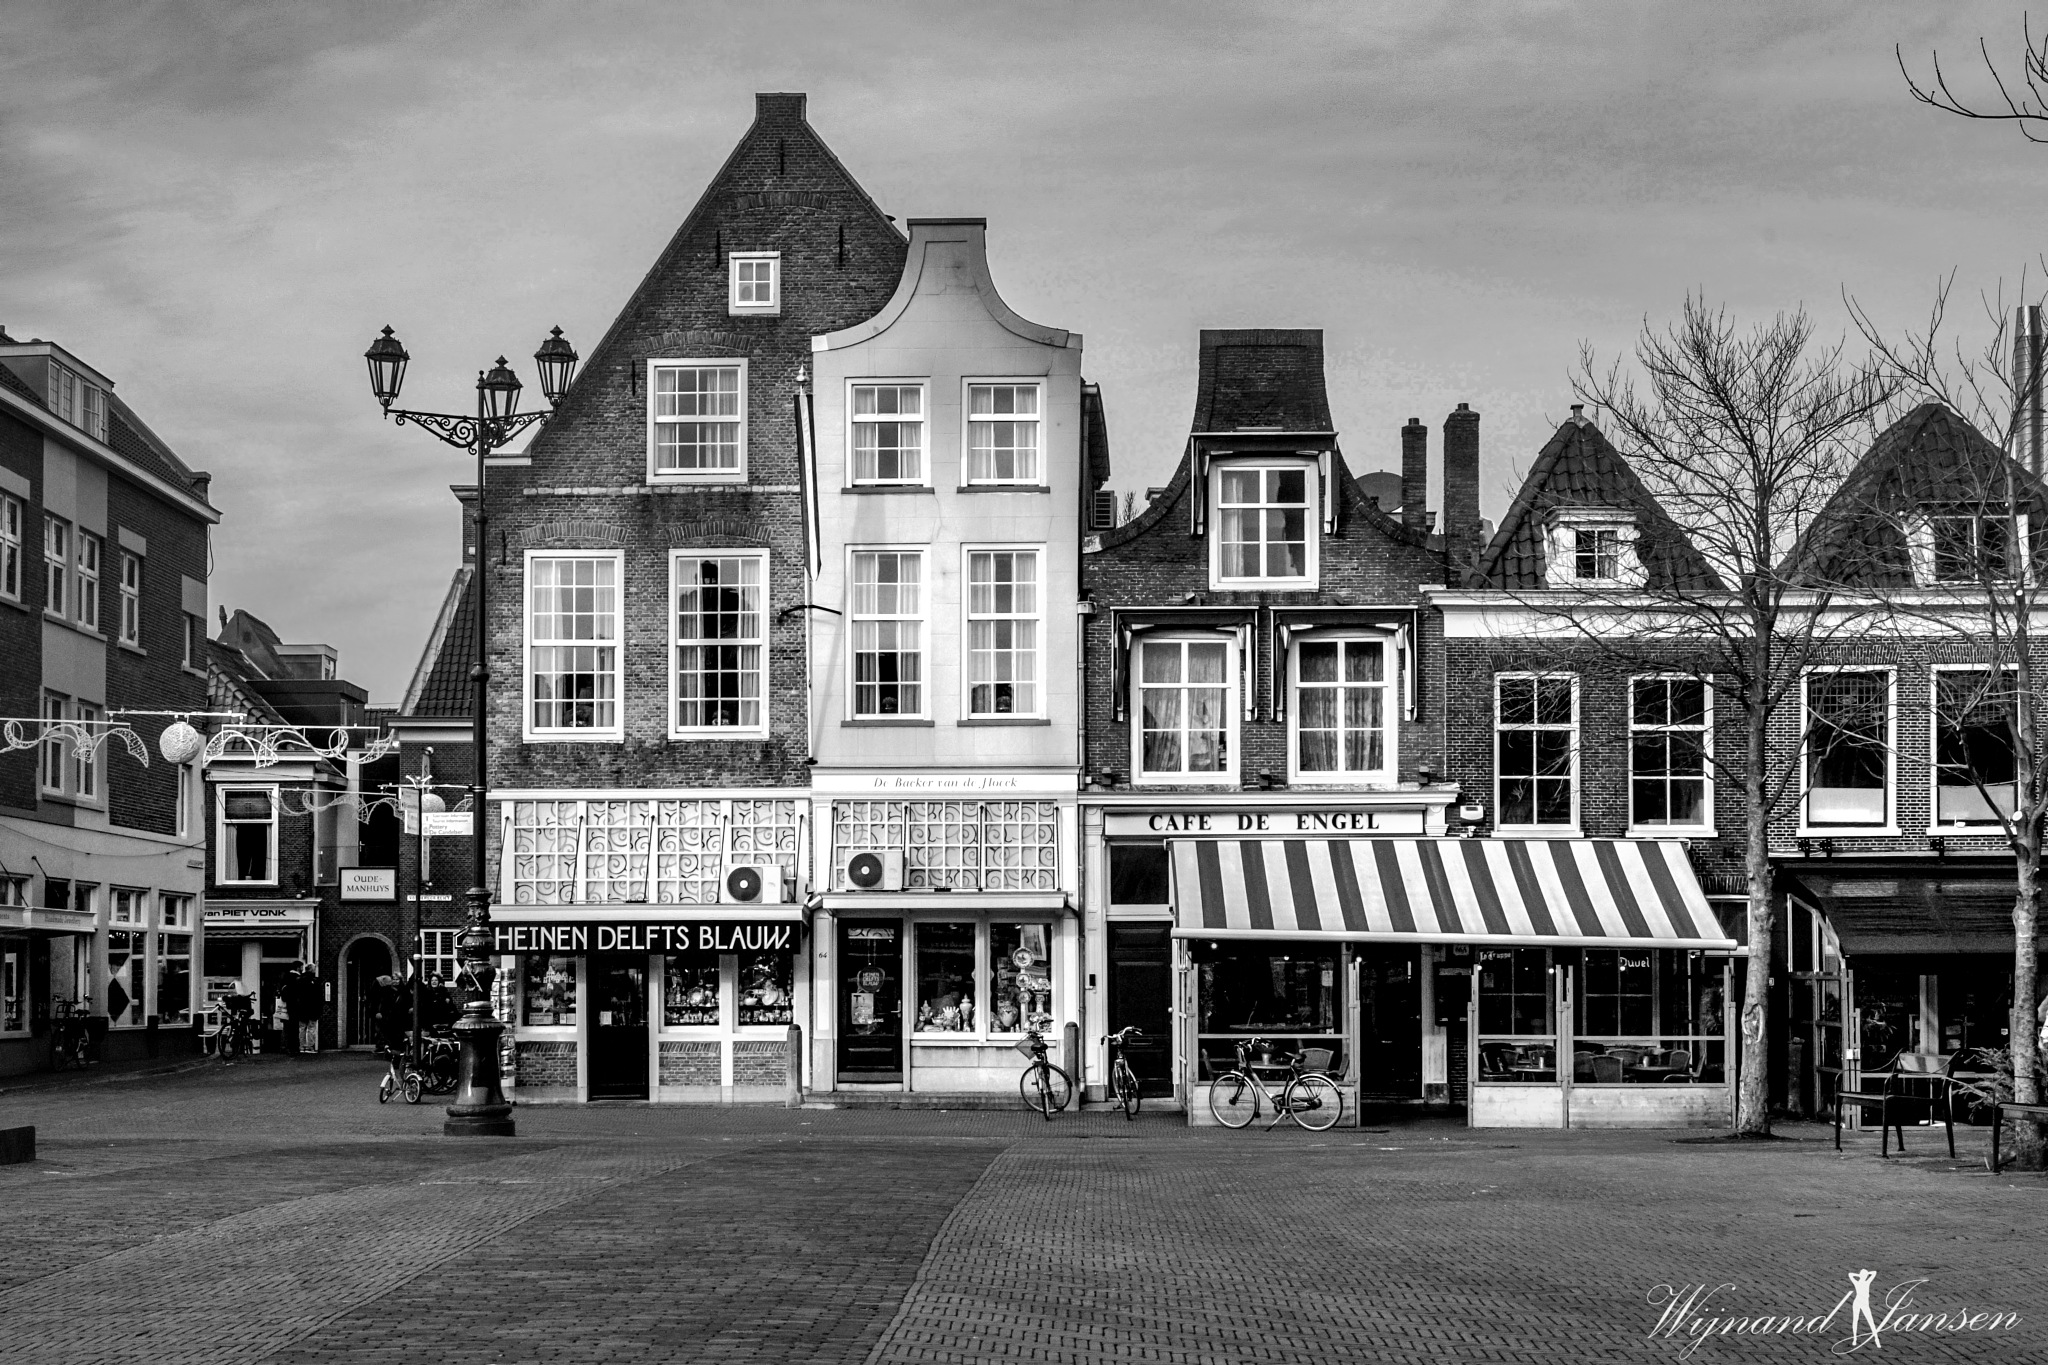 The market in Delft by Wijnand Jansen